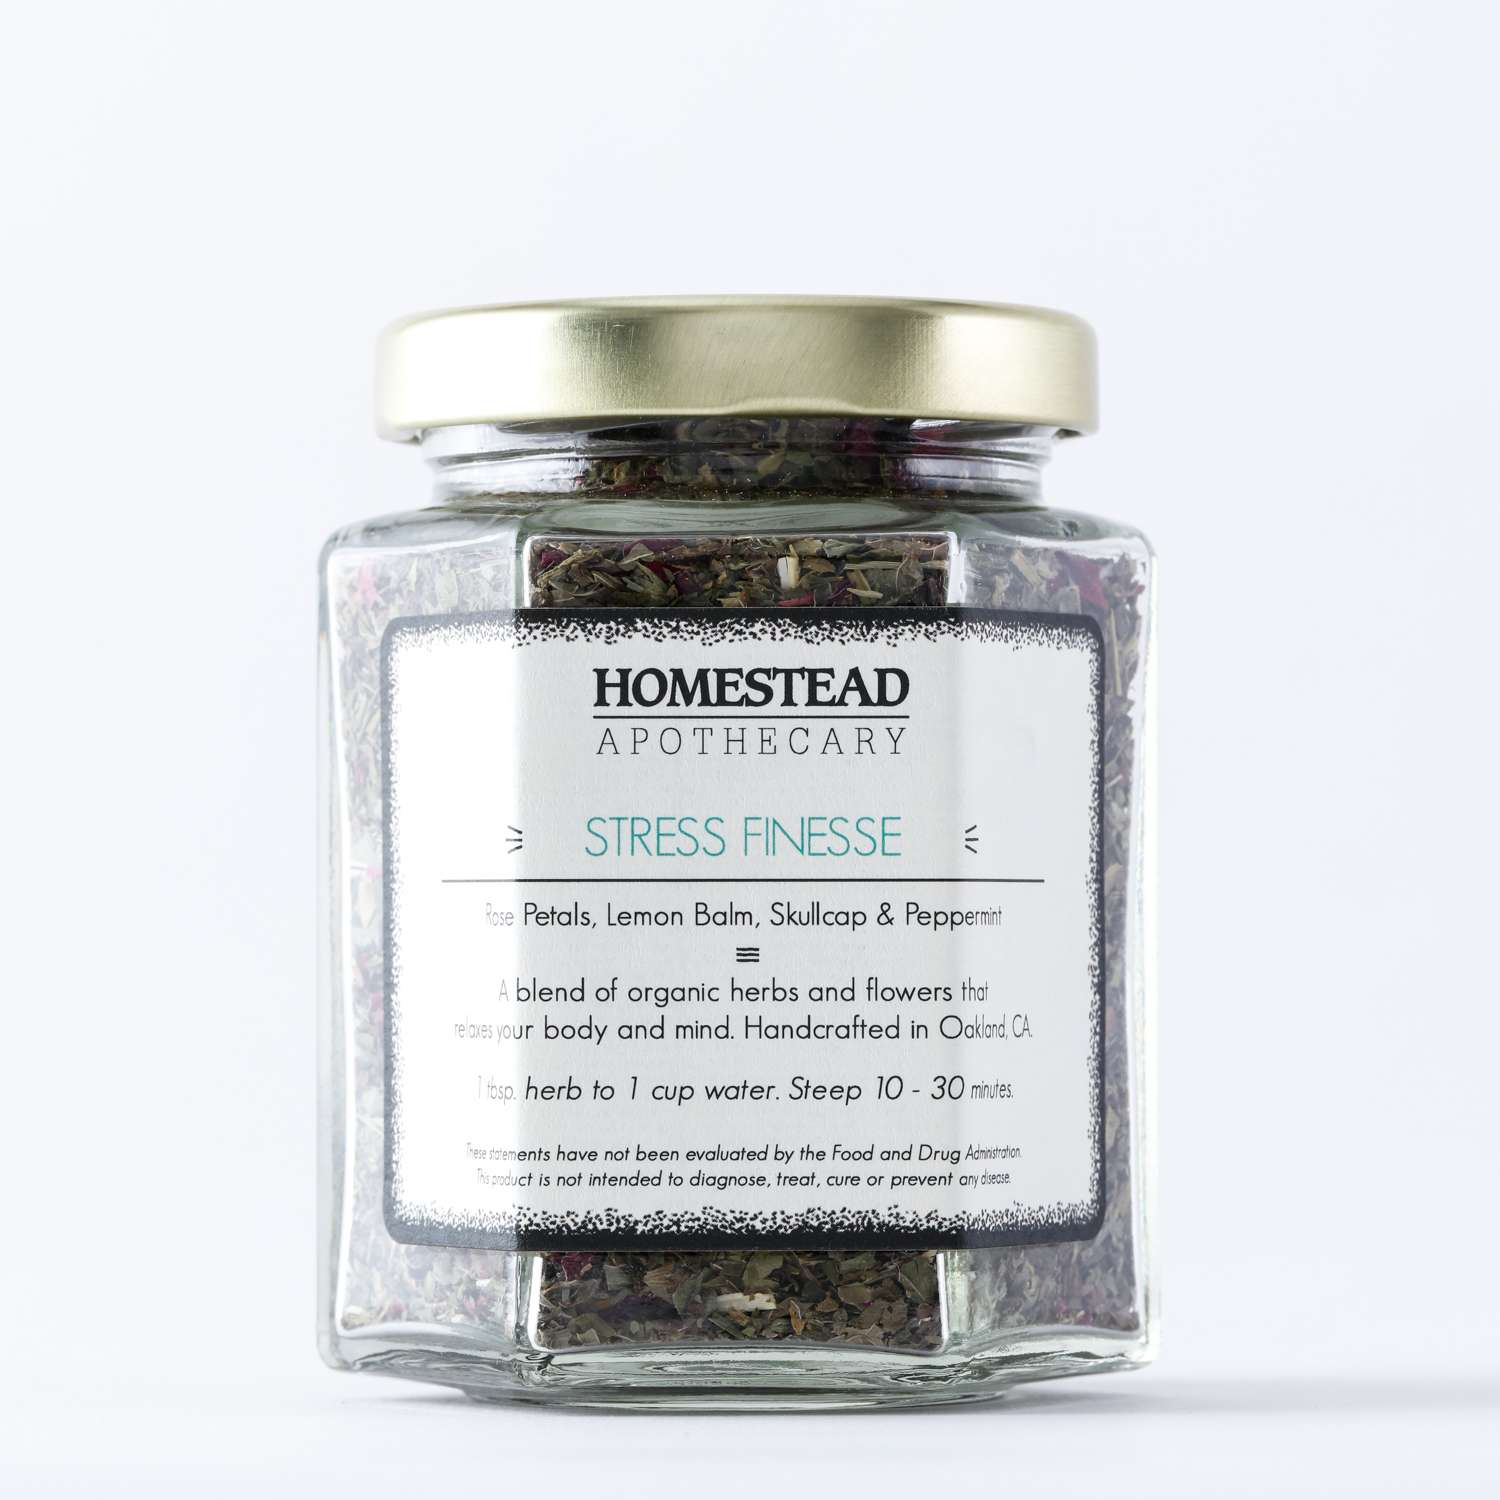 Homestead Apothecary Stress Finesse